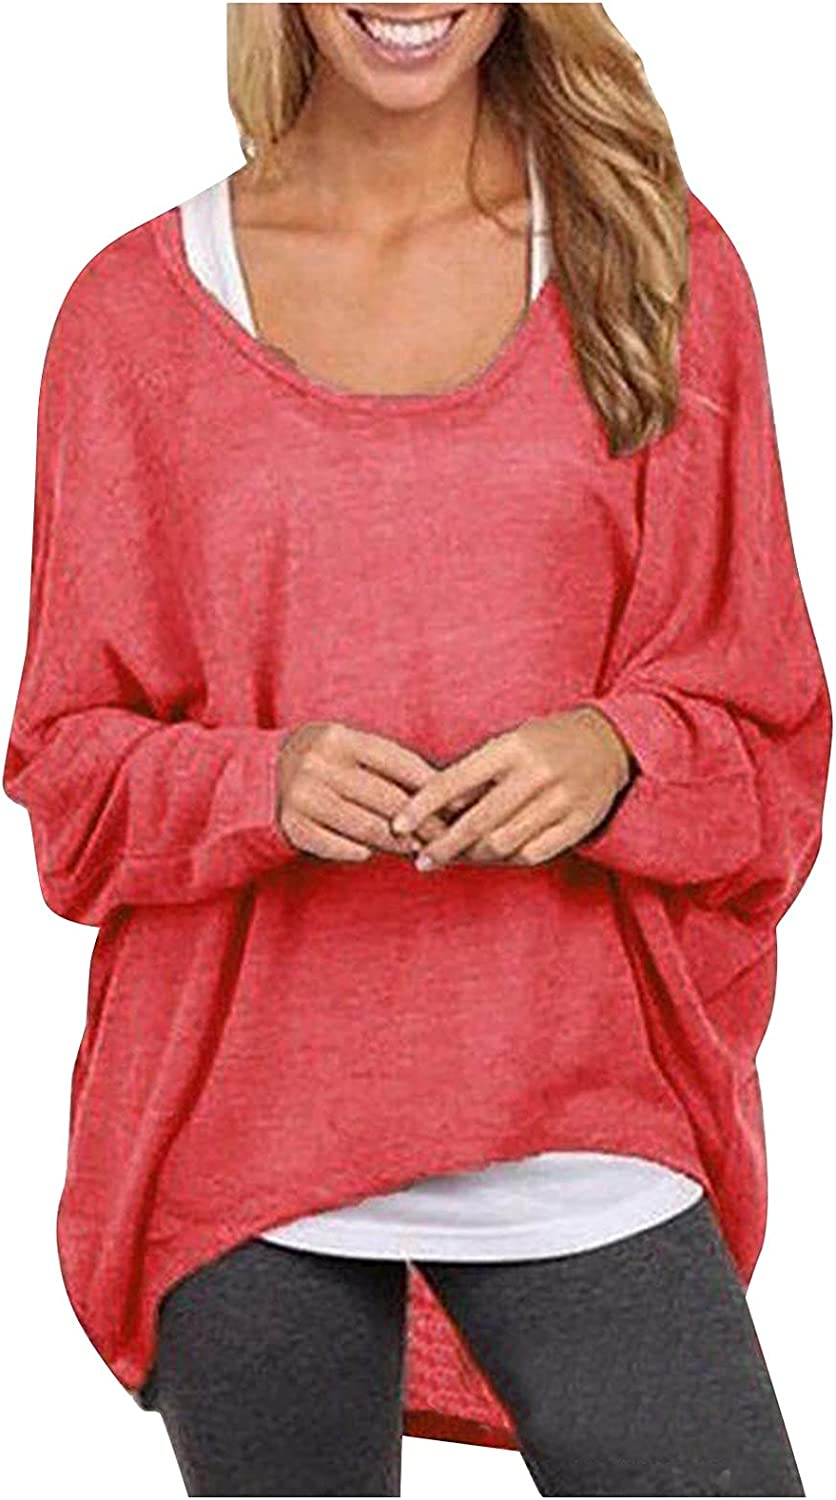 Batwing Sleeve Sweater for Women Loose Oversized Baggy Tops Pullover Casual Blouse T-Shirt